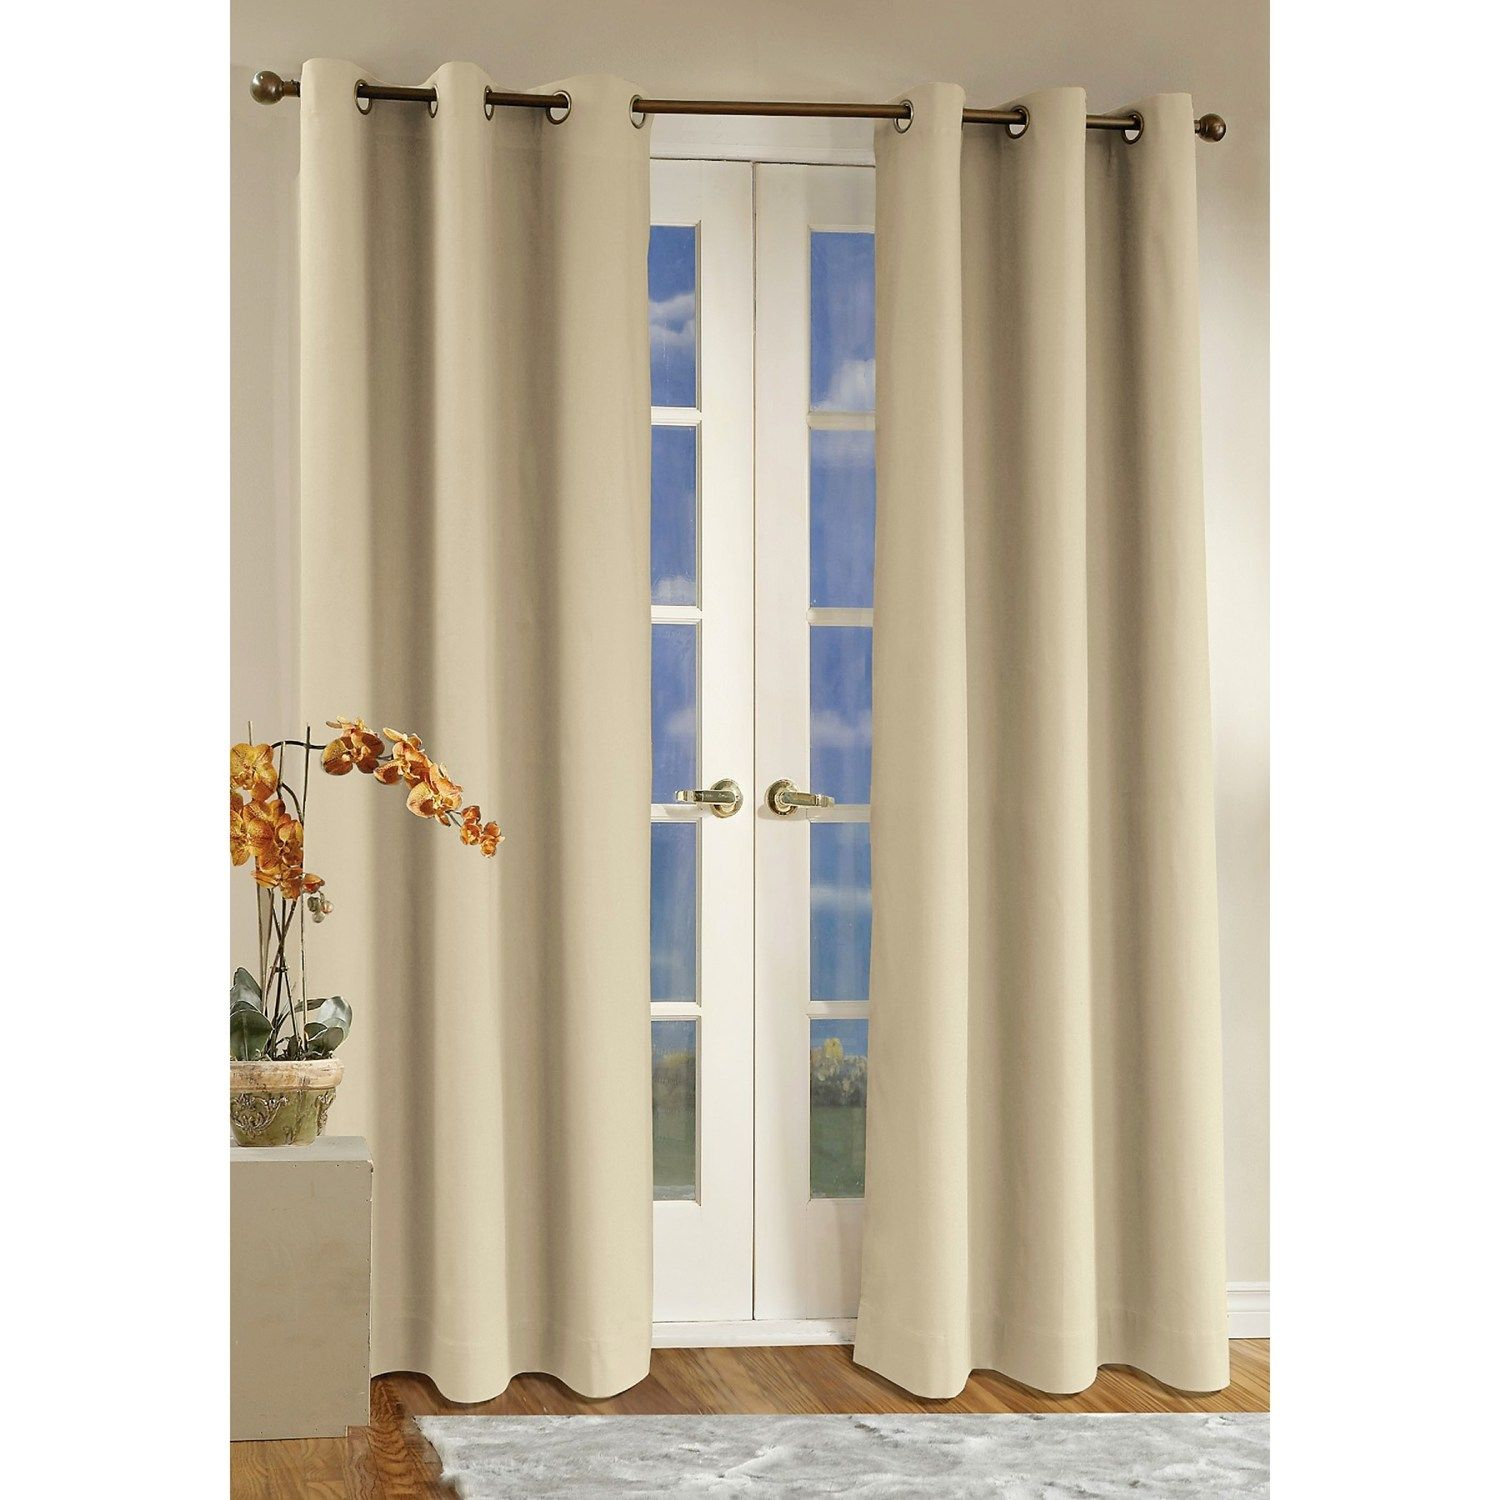 Interior Two Panel White Thermal Patio Door Curtain Curtains For